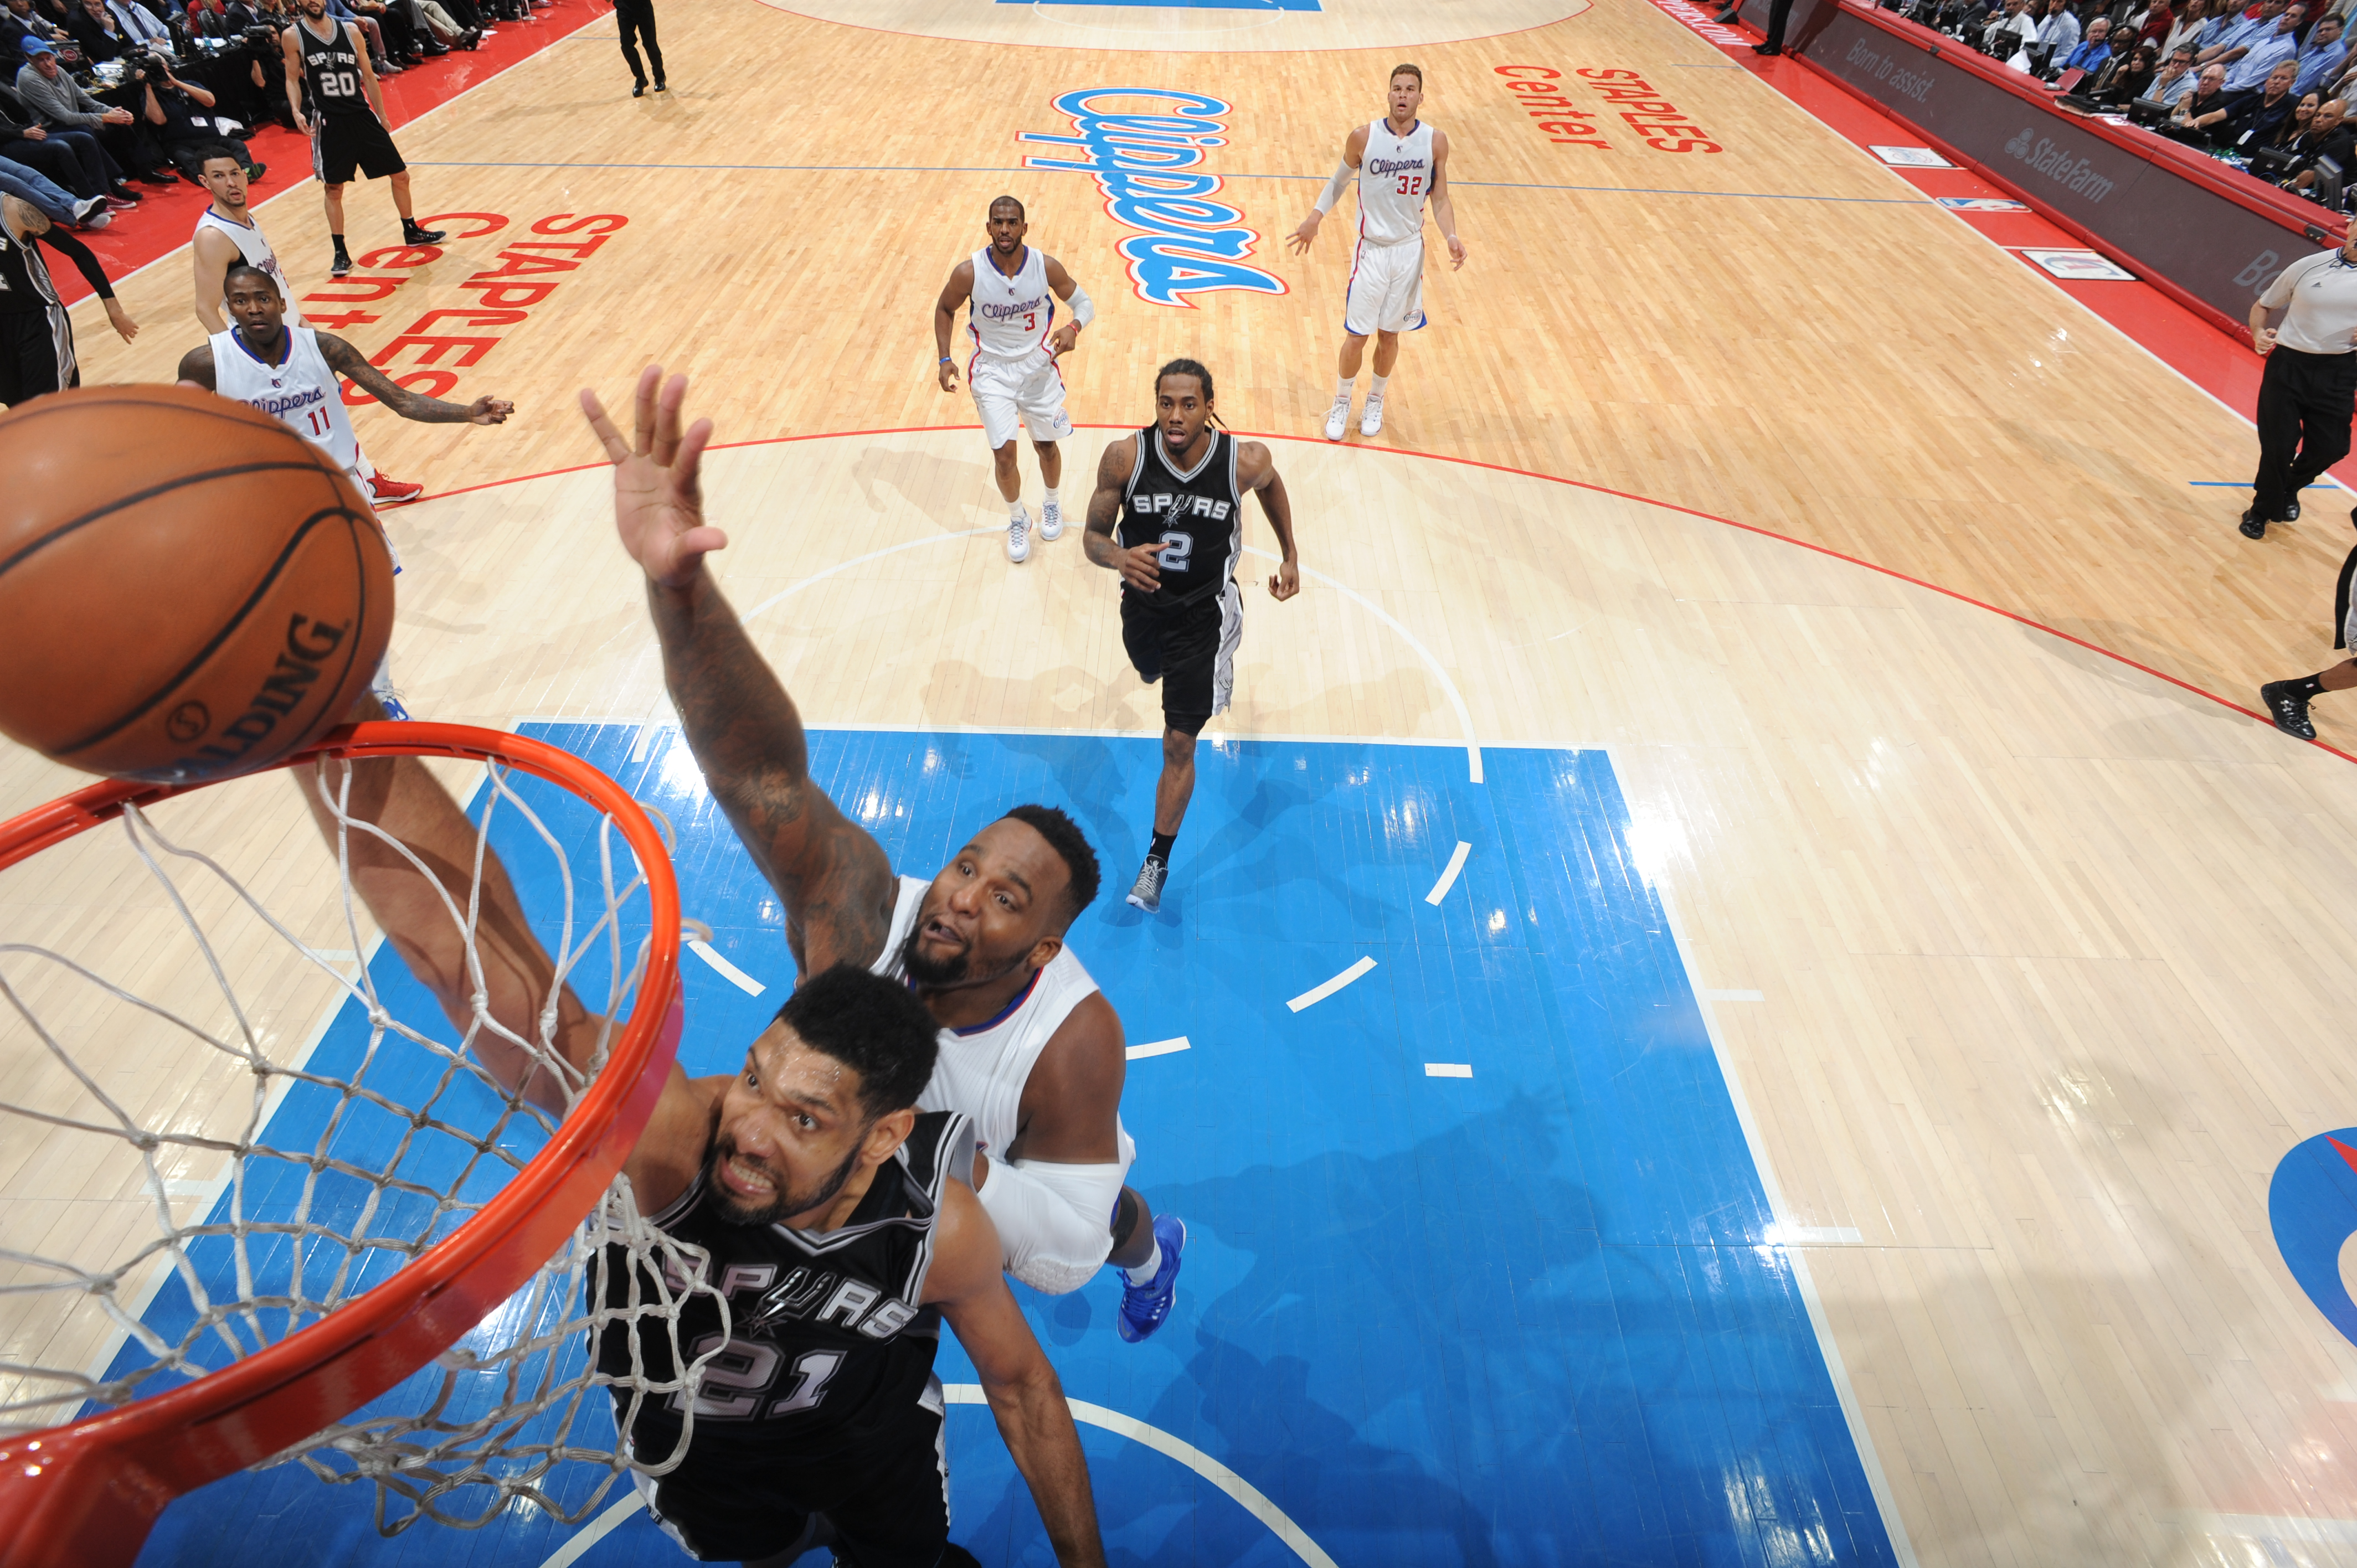 LOS ANGELES, CA - APRIL 28:  Tim Duncan #21 of the San Antonio Spurs dunks against Glen Davis #0 of the Los Angeles Clippers in Game Five of the Western Conference Quarterfinals during the 2015 NBA Playoffs on April 28, 2015 at Staples Center in Los Angel